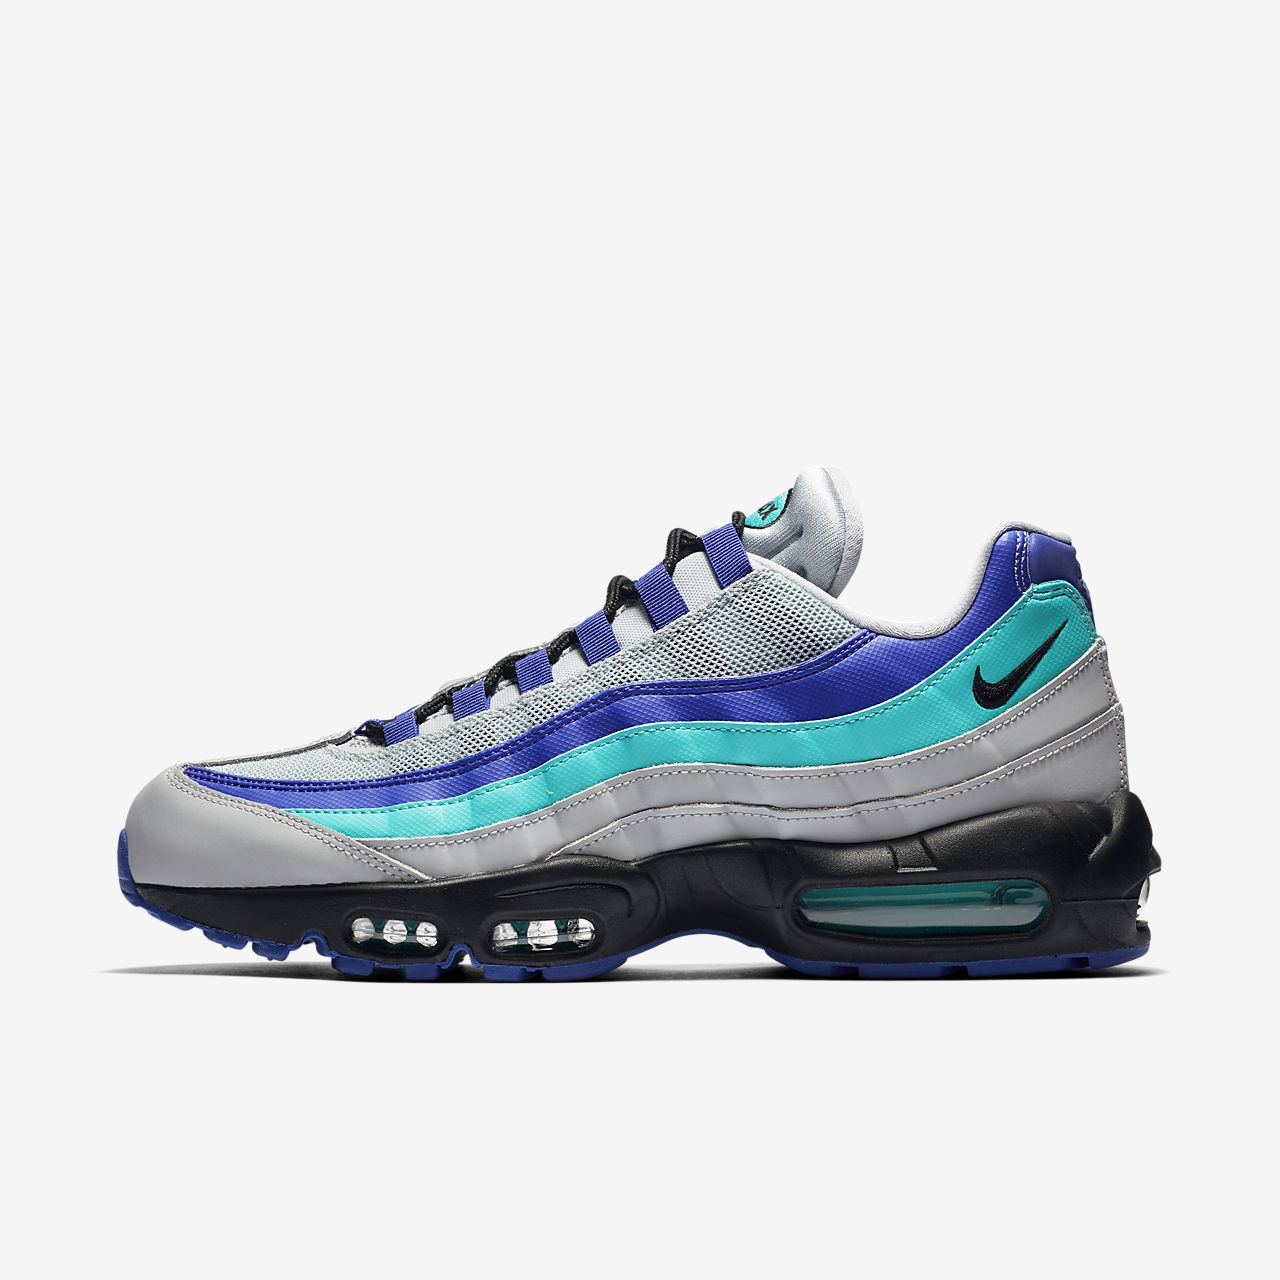 watch 2c7c0 c66c5 ... Nike Air Max 95 OG Shoe